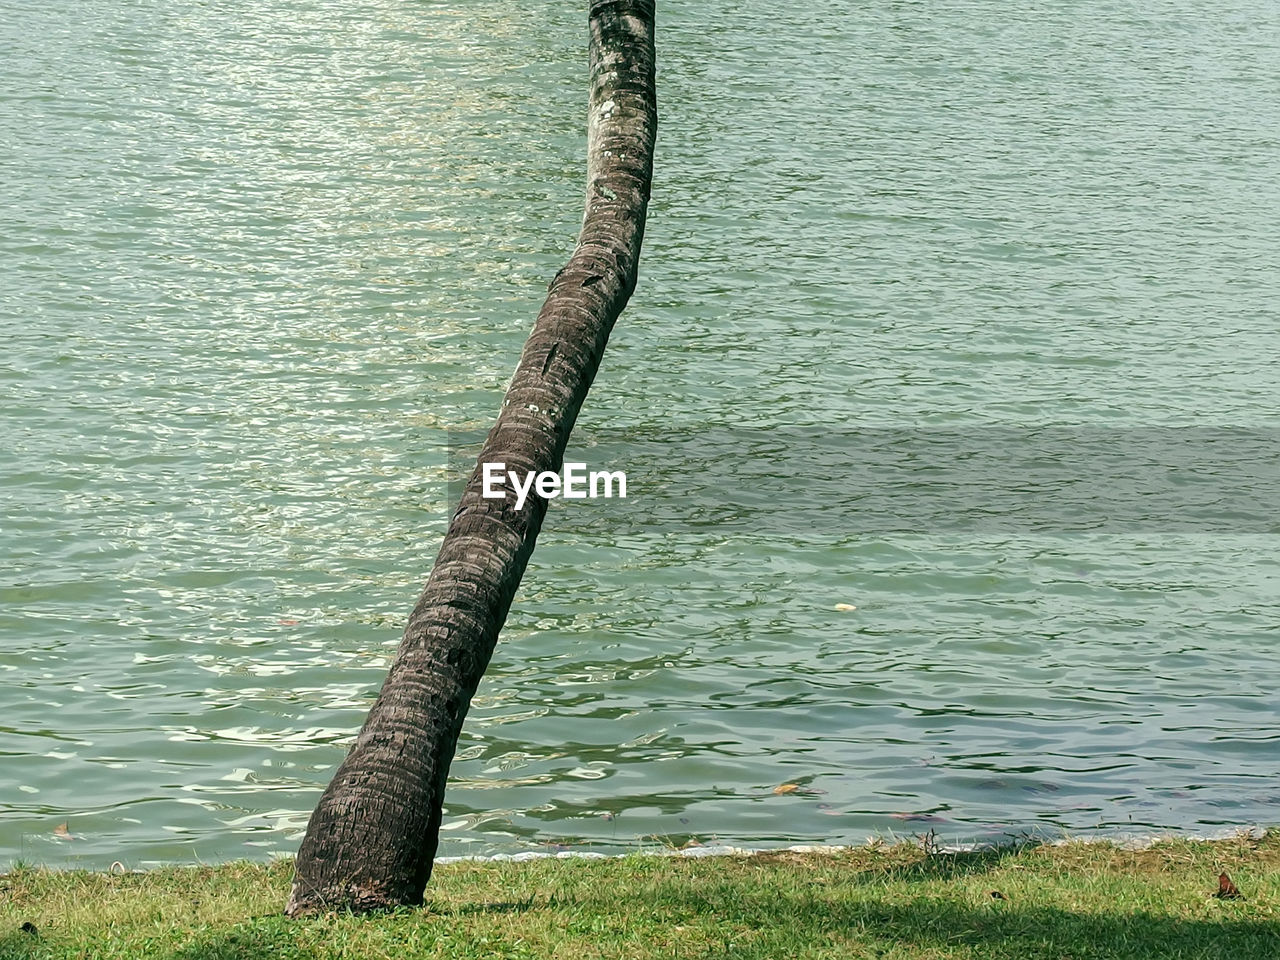 water, lake, nature, day, outdoors, tranquility, no people, tree trunk, green color, beauty in nature, tree, growth, grass